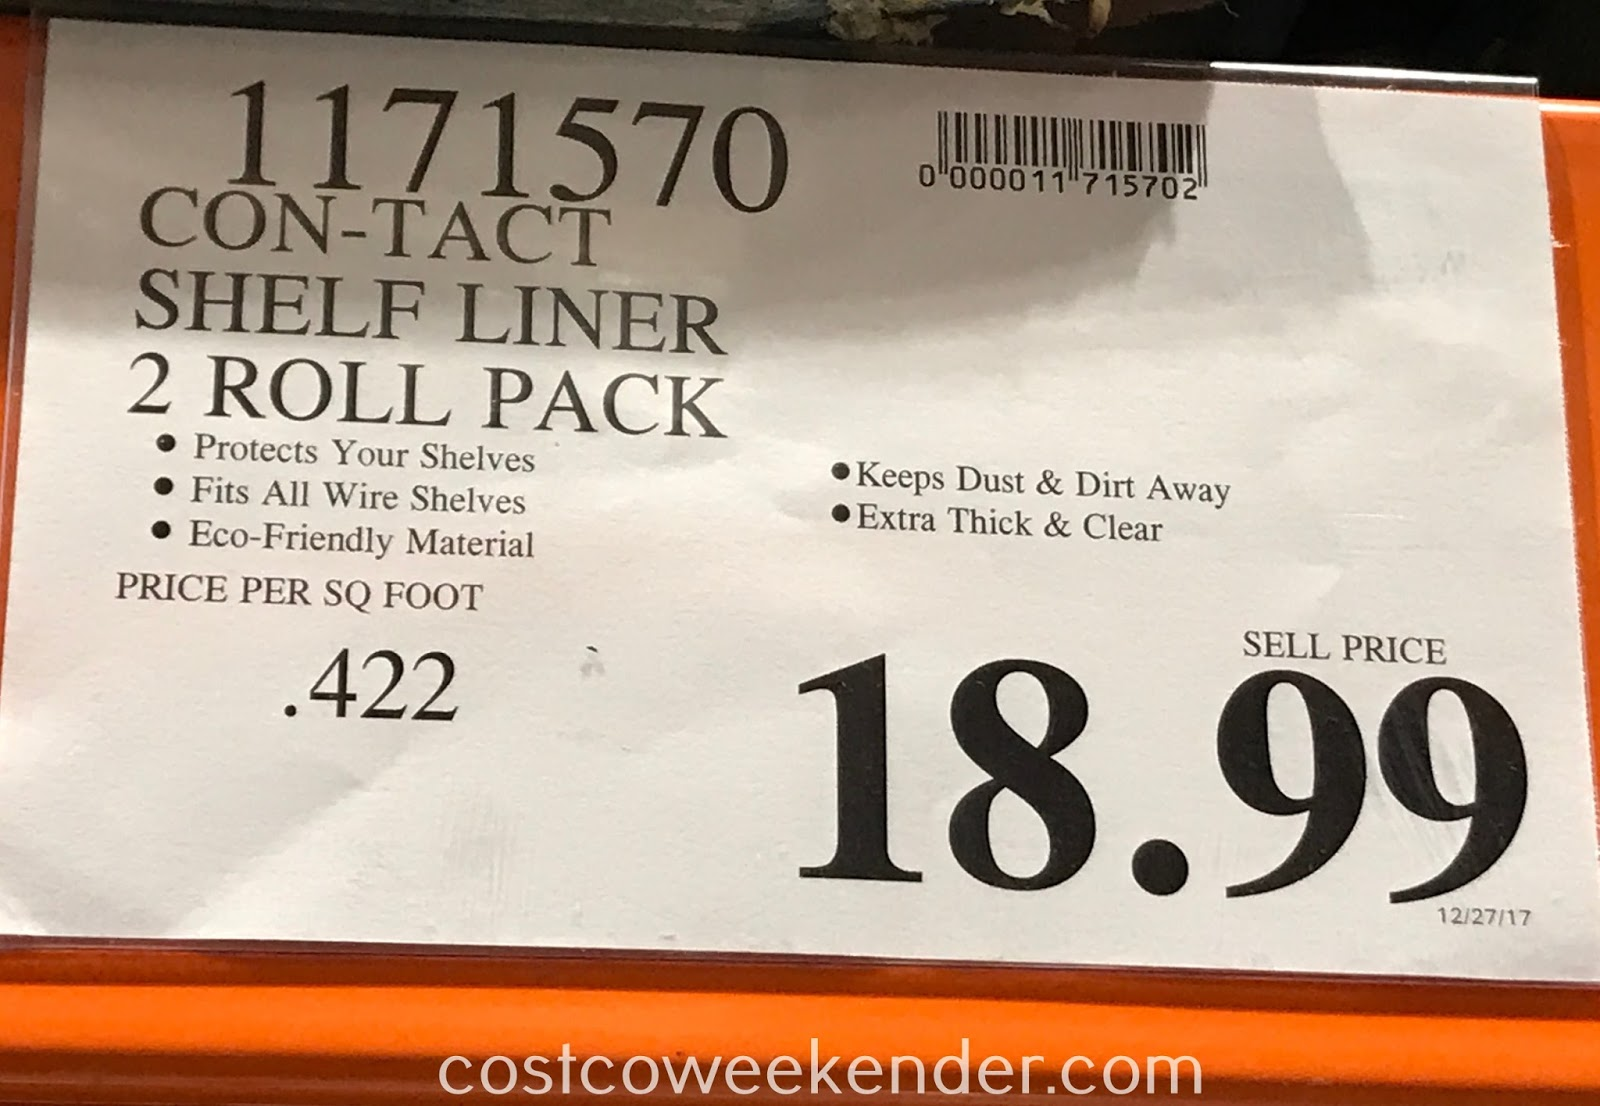 Deal for 2 rolls of Con-Tact Premium Shelf Liner at Costco